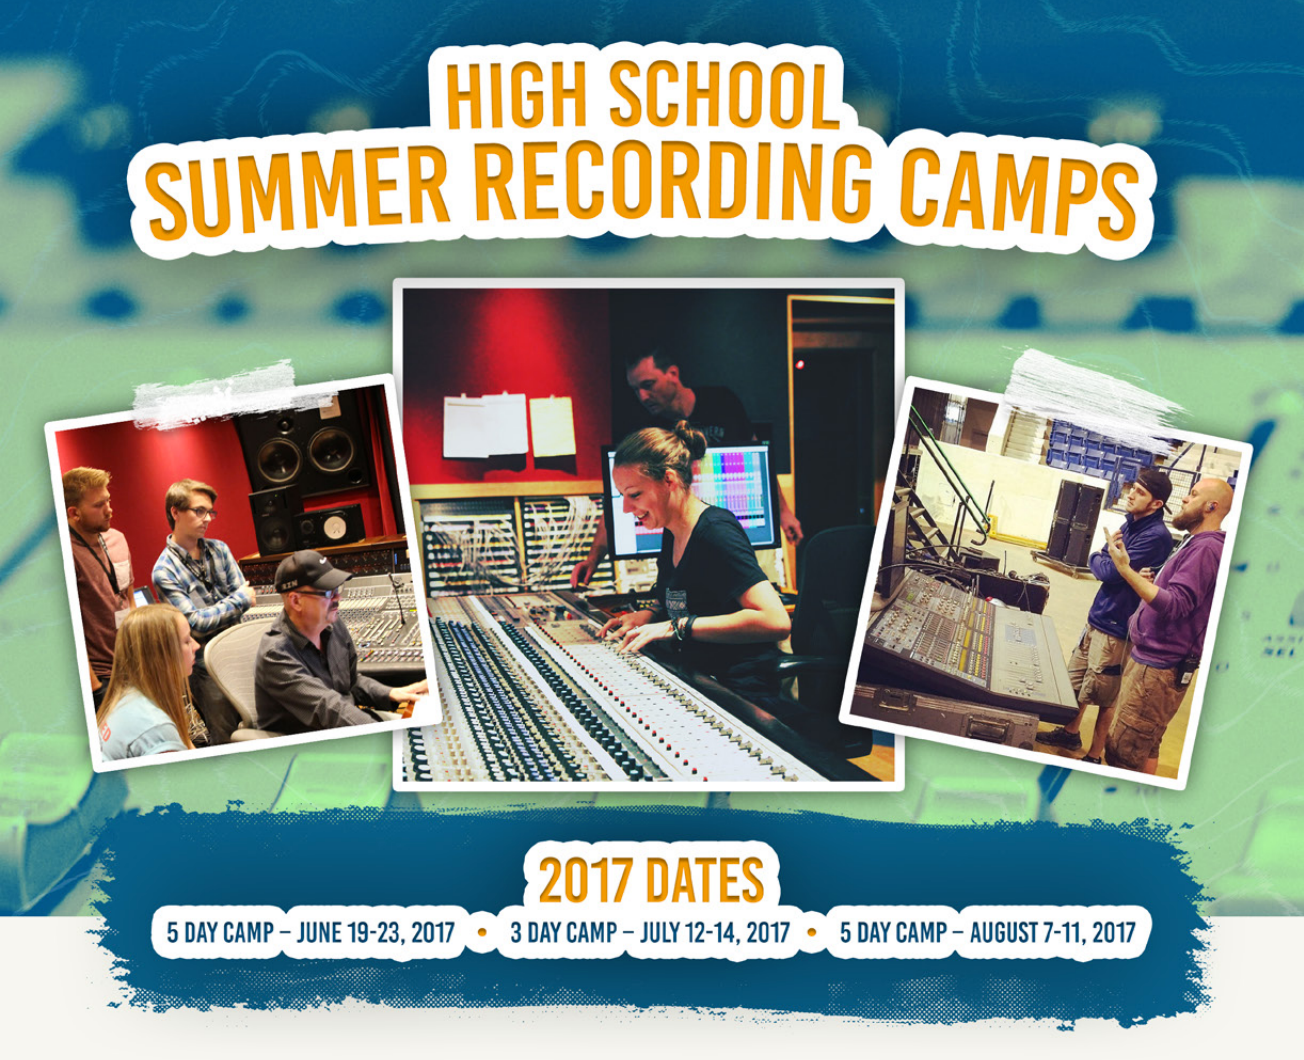 2017 High School Summer Recording Camps Schedule